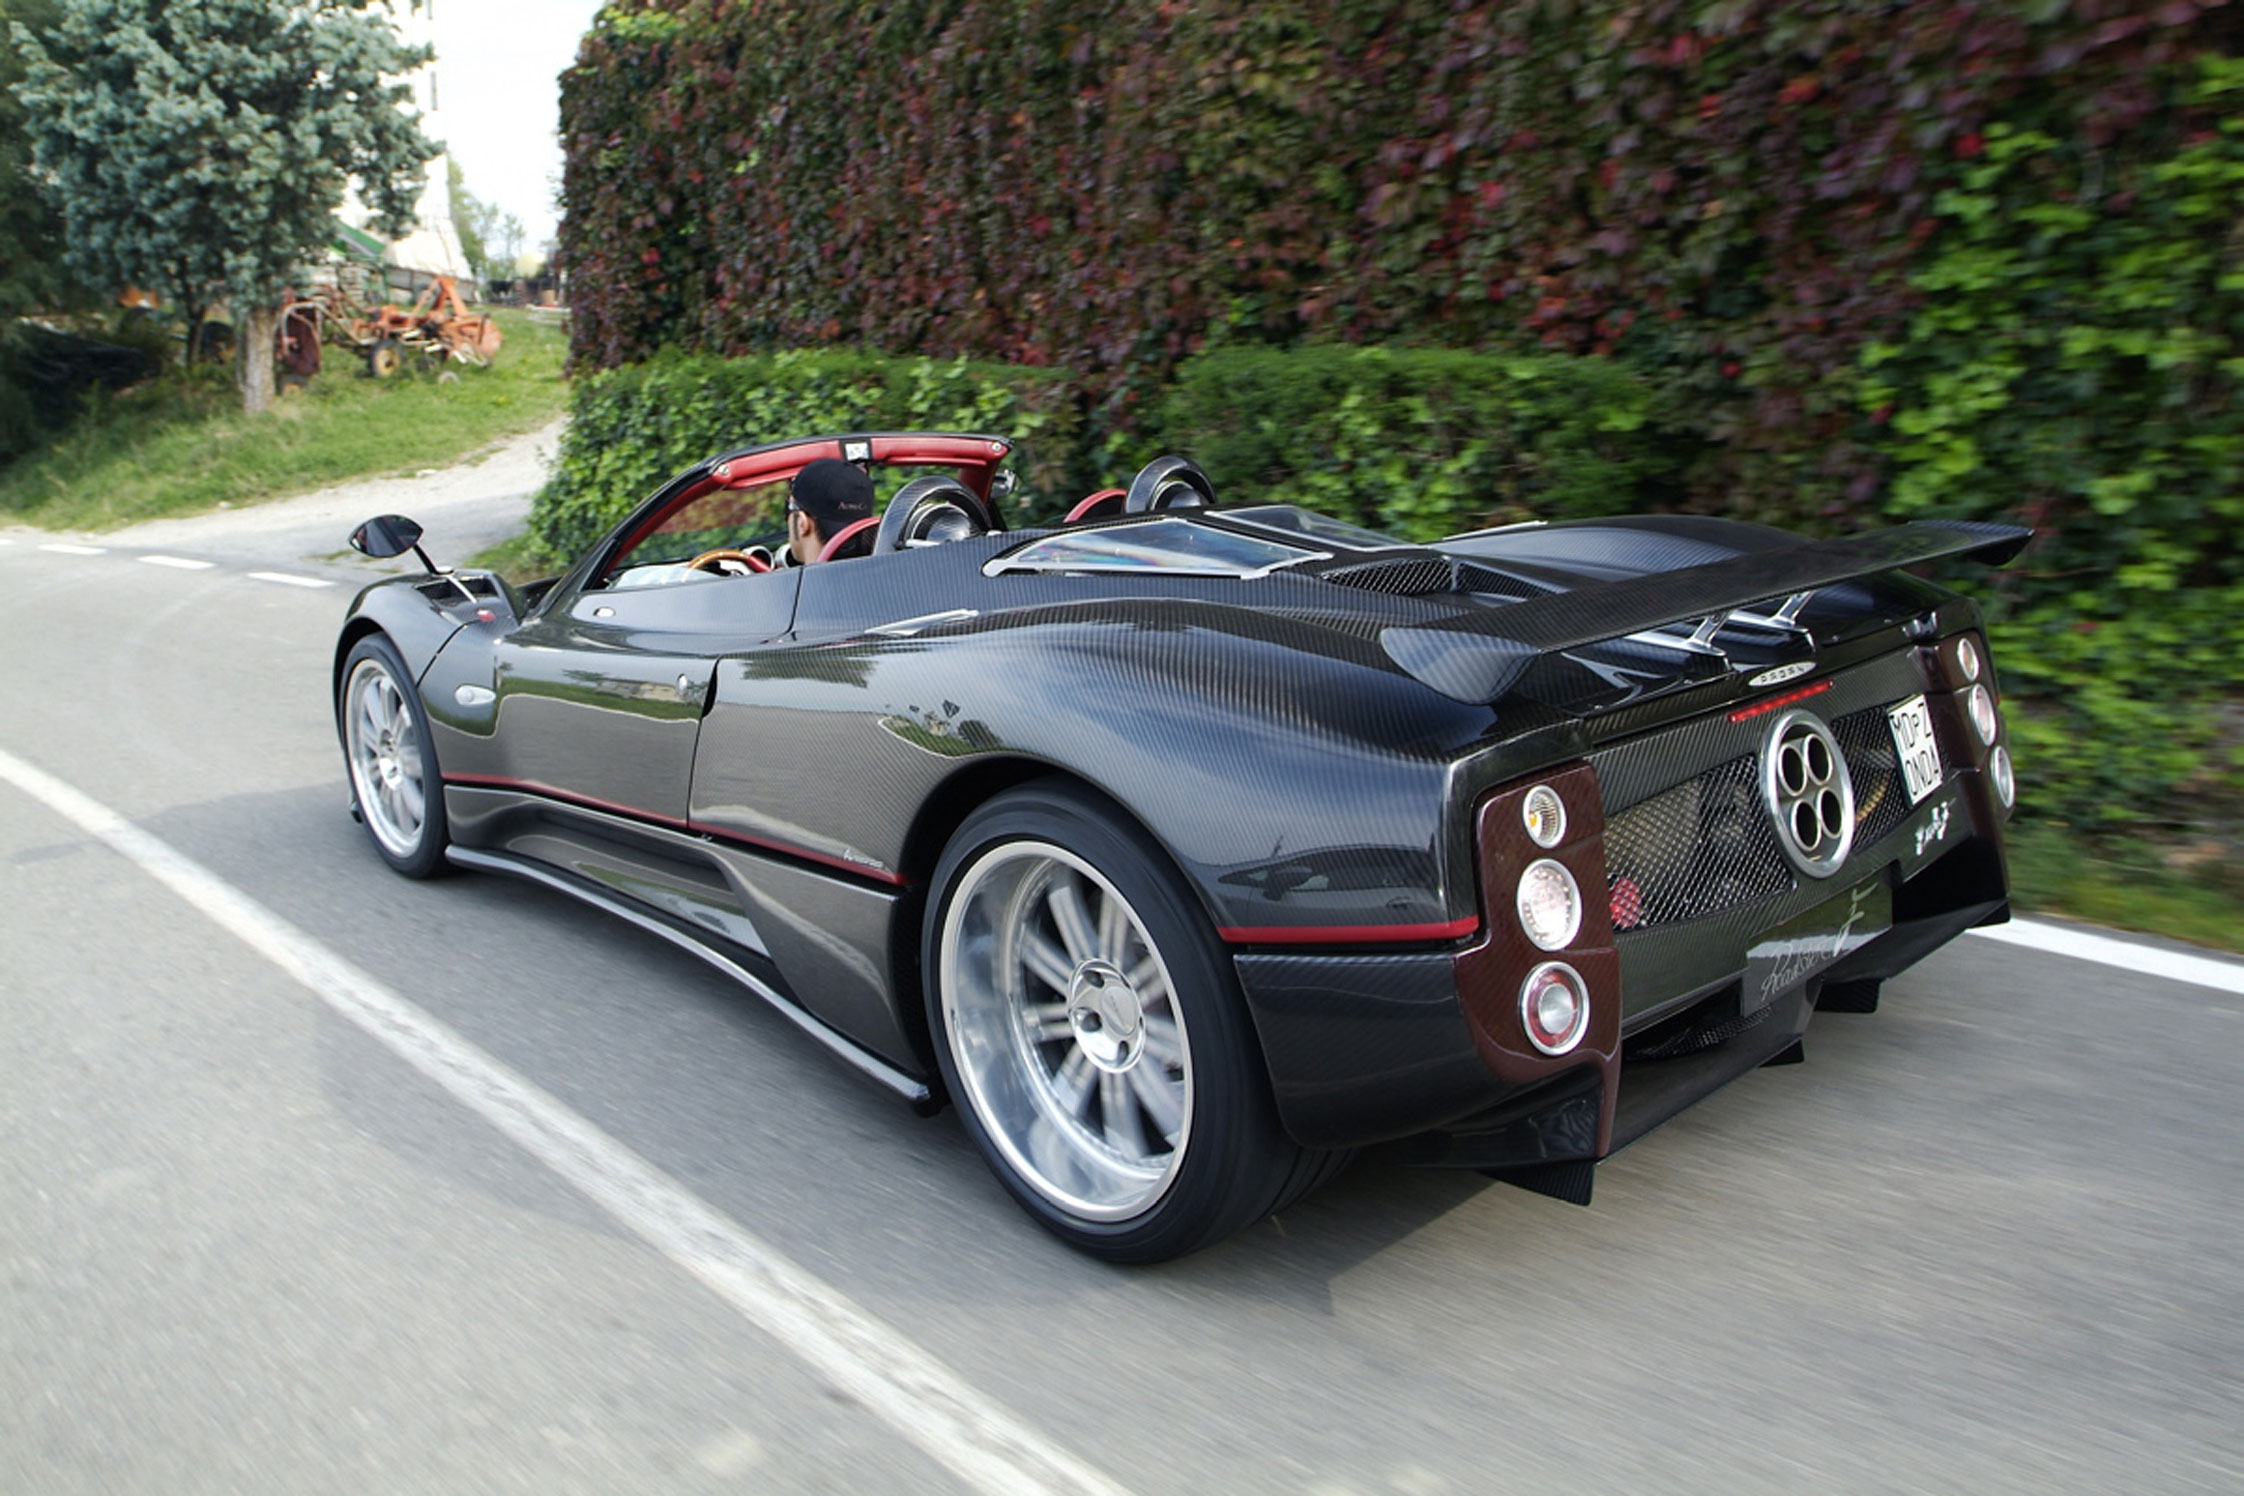 pagani zonda roadster f 650 ch les voitures de s rie les plus puissantes diaporama photo. Black Bedroom Furniture Sets. Home Design Ideas